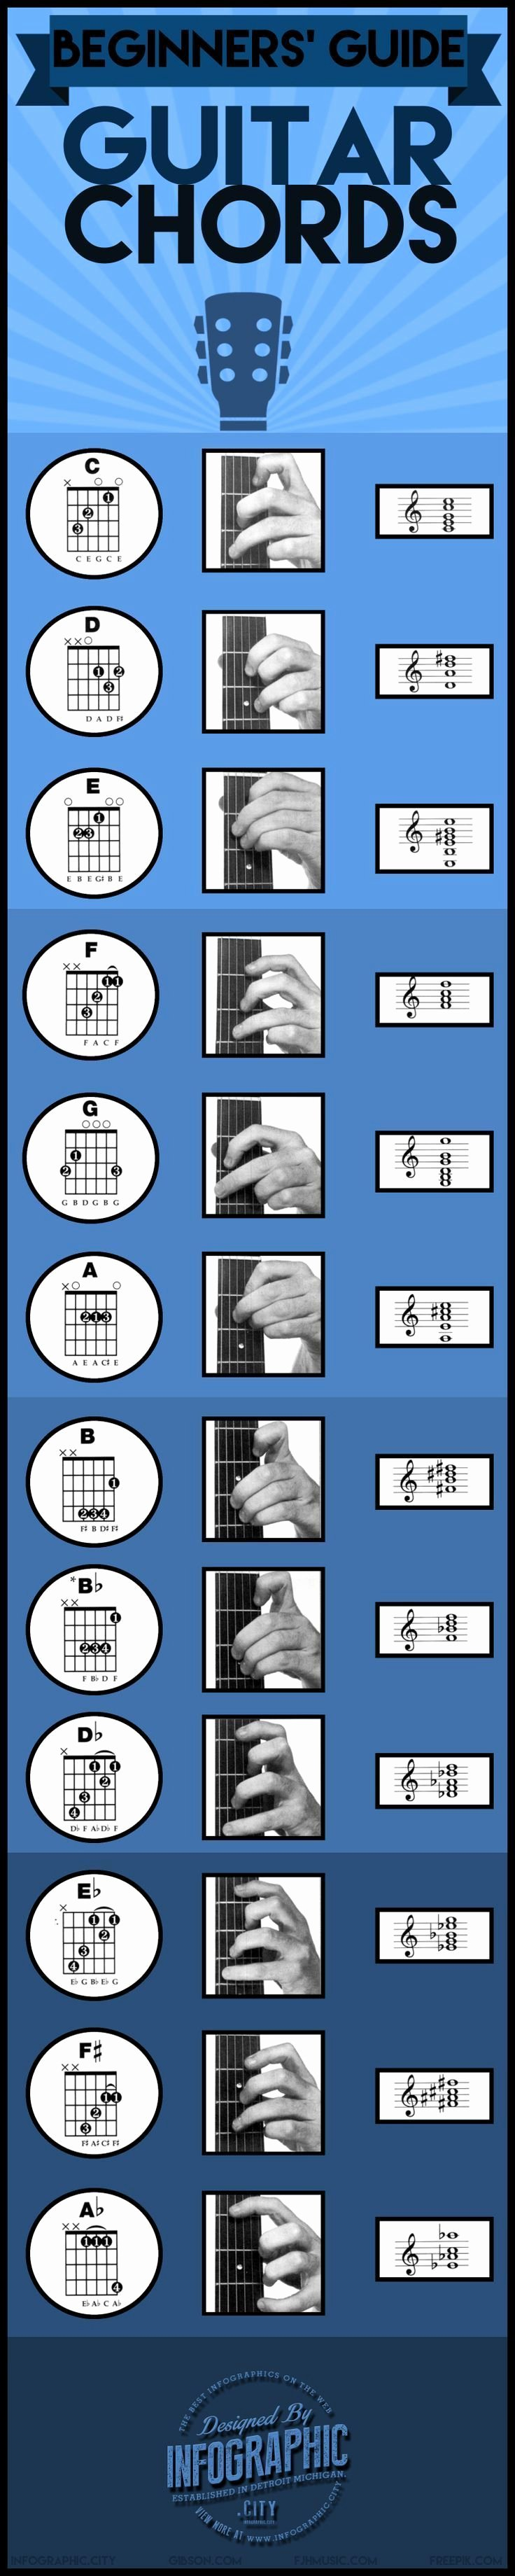 Guitar Chords for Beginners Best Of A Beginners Guide to Guitar Chords Infographic